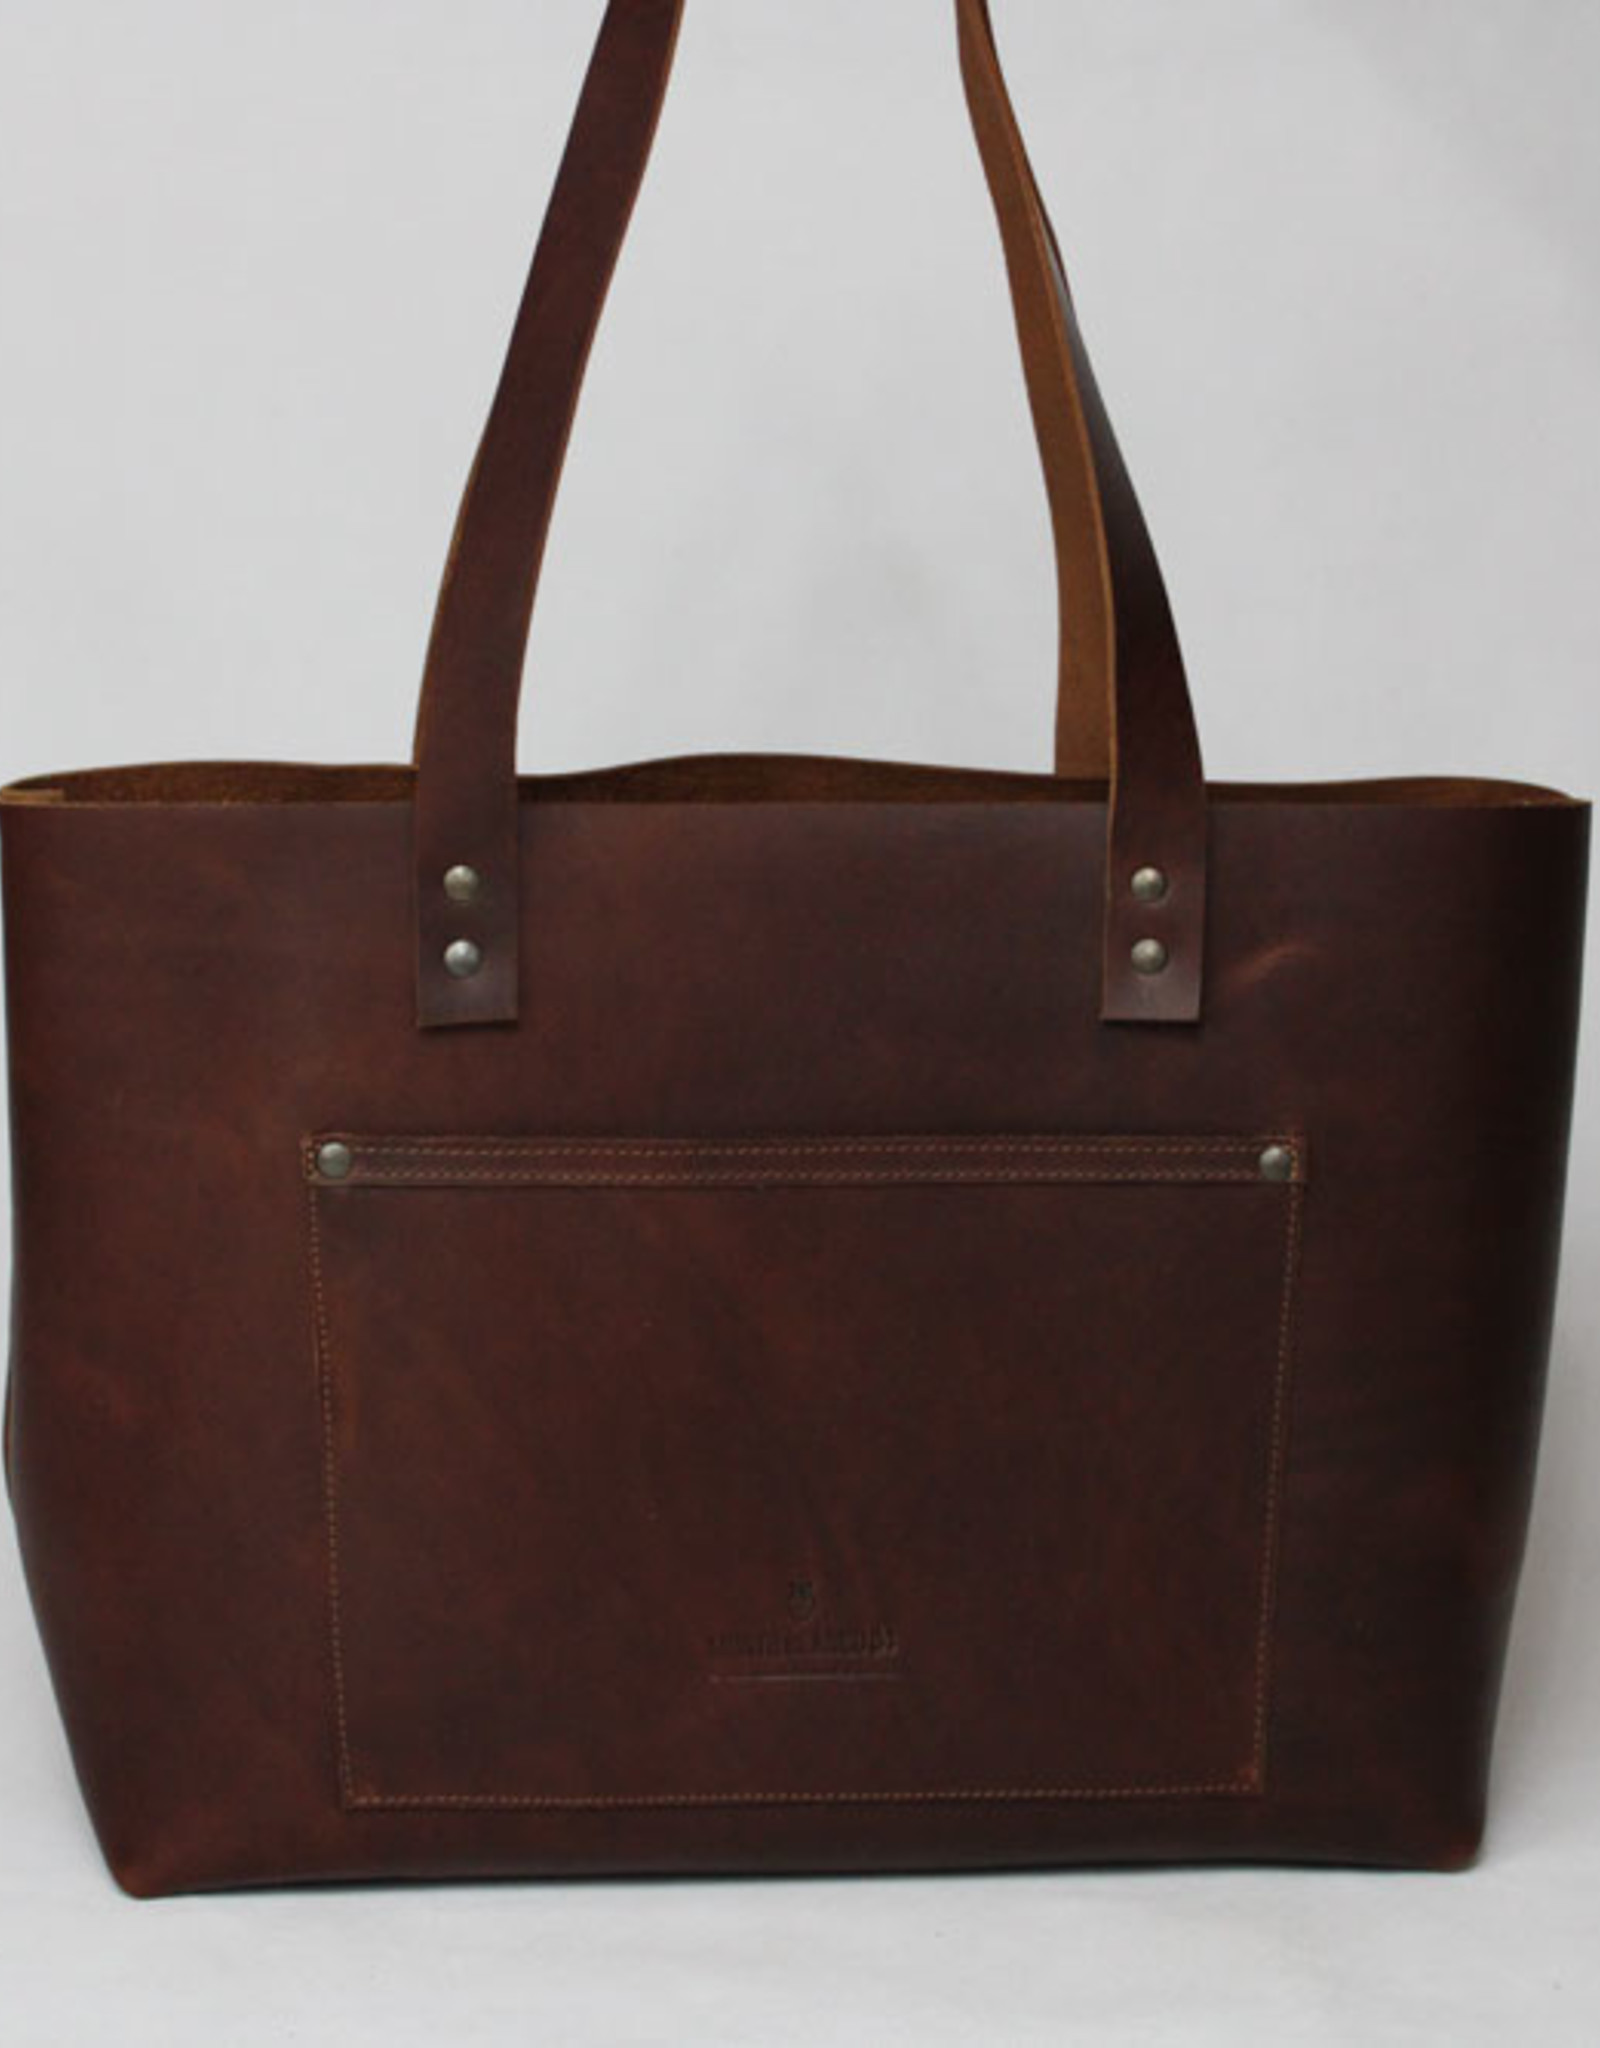 MONTE BLANCO 04 TOTE BAG PIEL MARRON, MONTE BLANCO 04